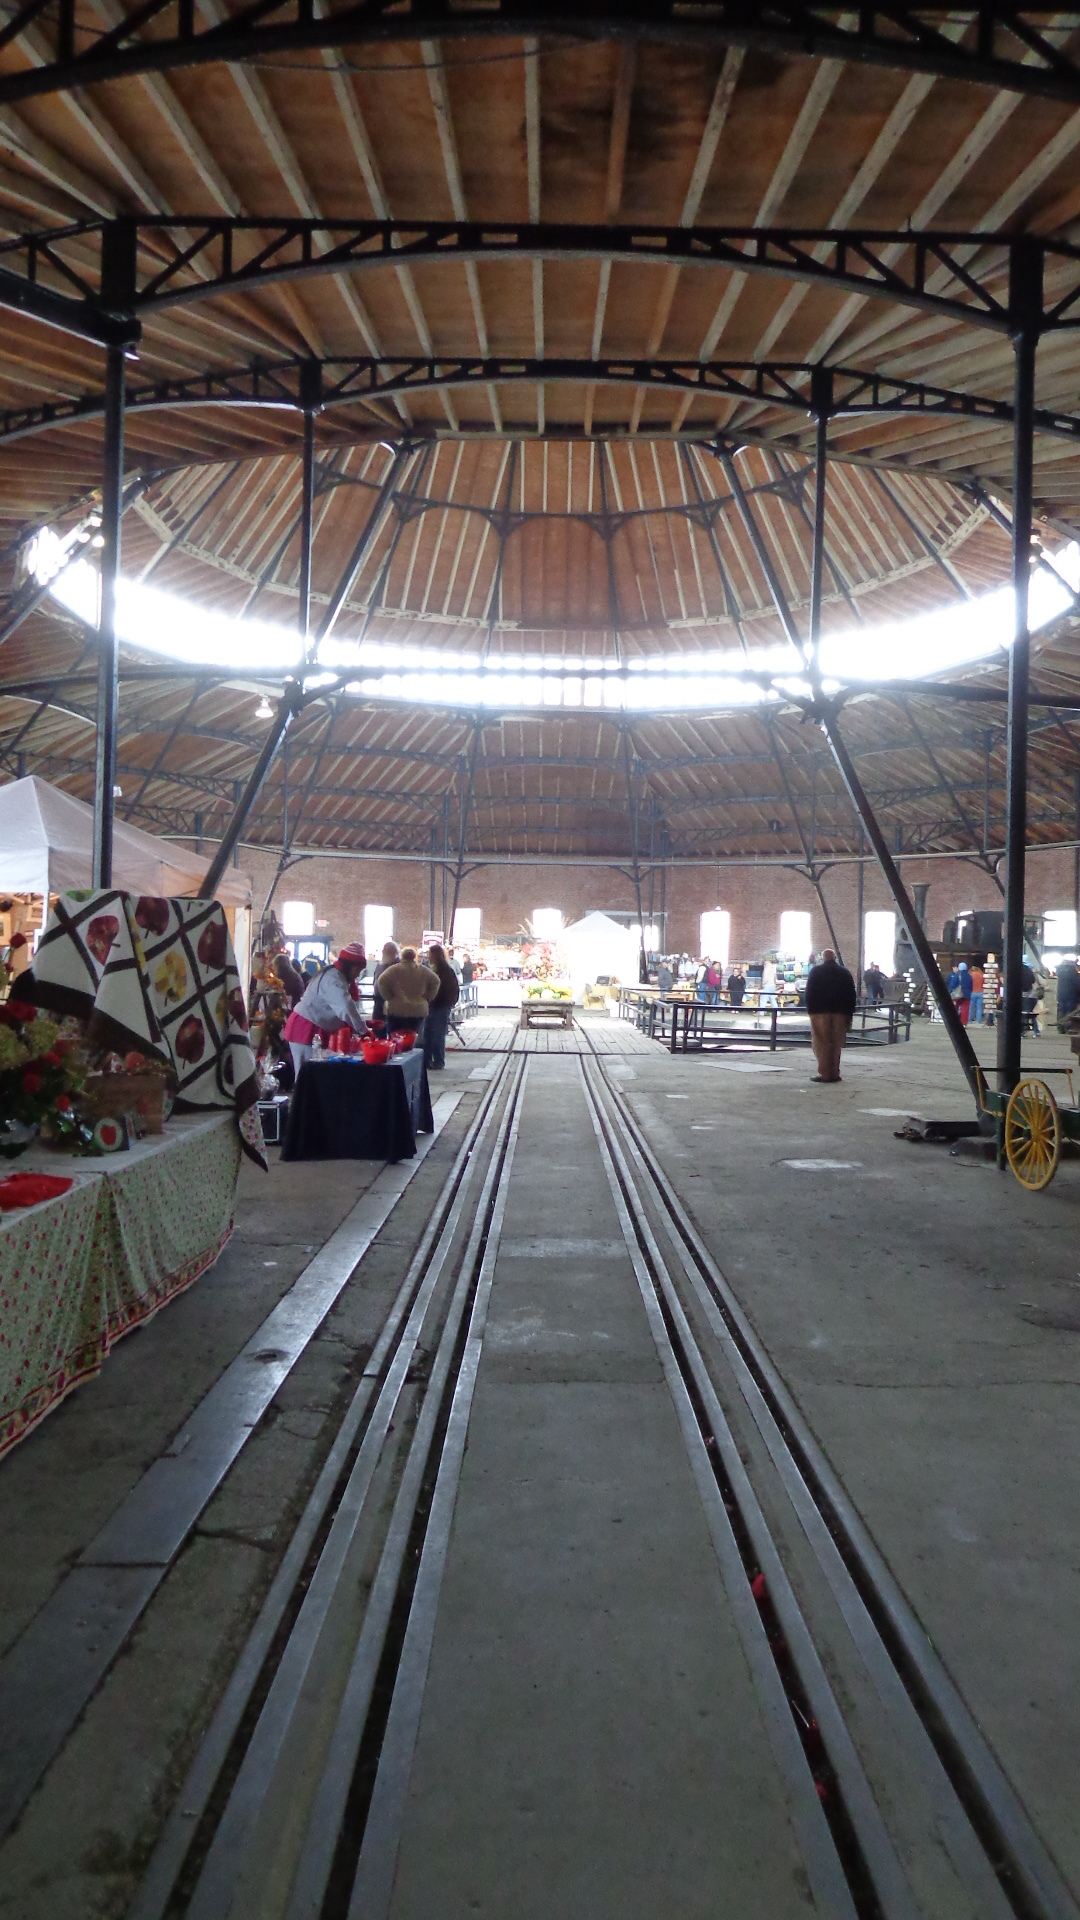 Interior of the B&O Roundhouse